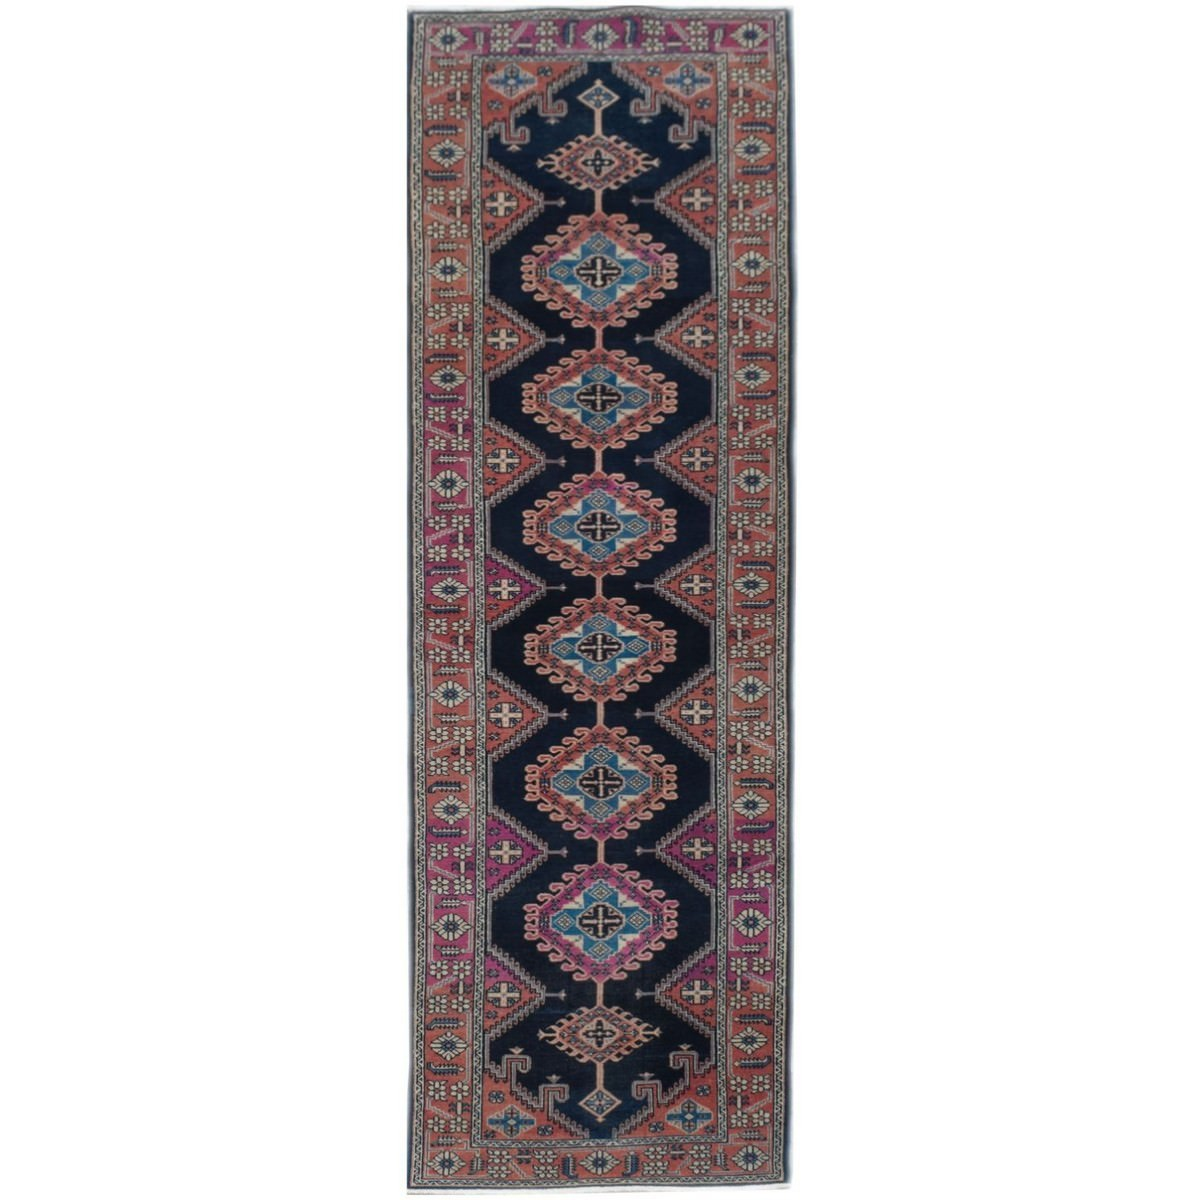 One of A Kind Hamaad Hand Knotted Wool Persian Runner Rug, 337x99cm